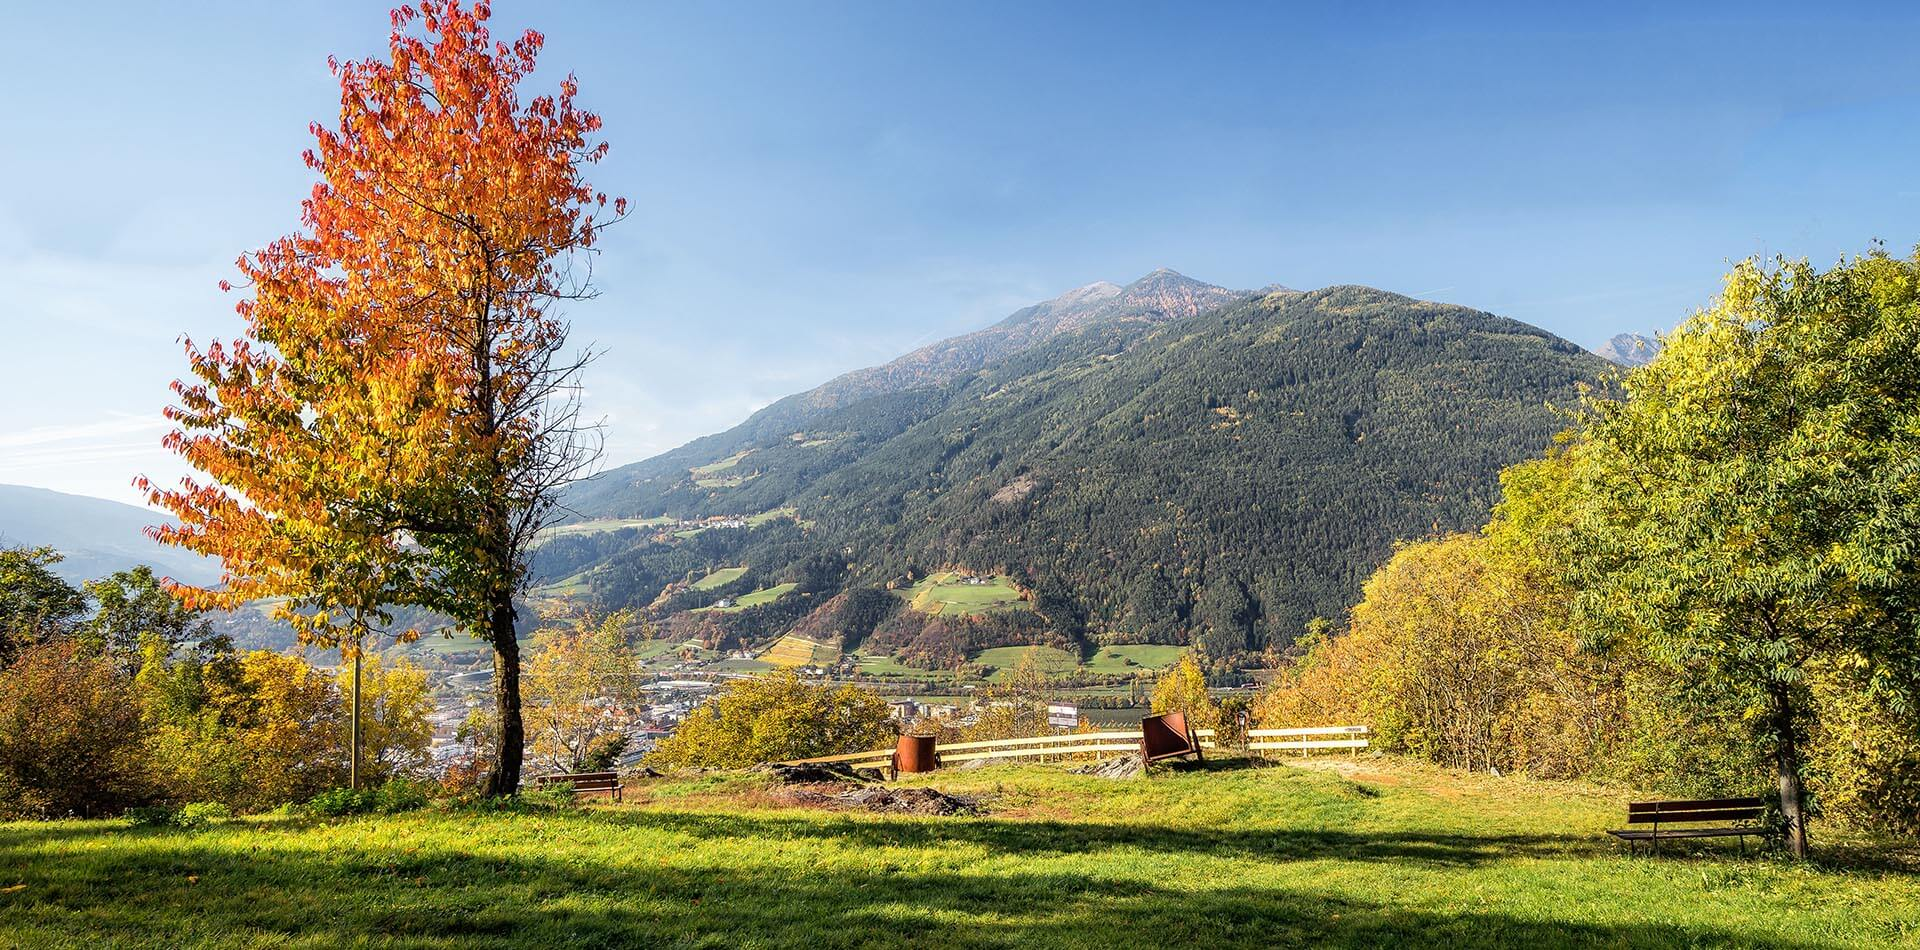 Autunno in Valle Isarco in Alto Adige